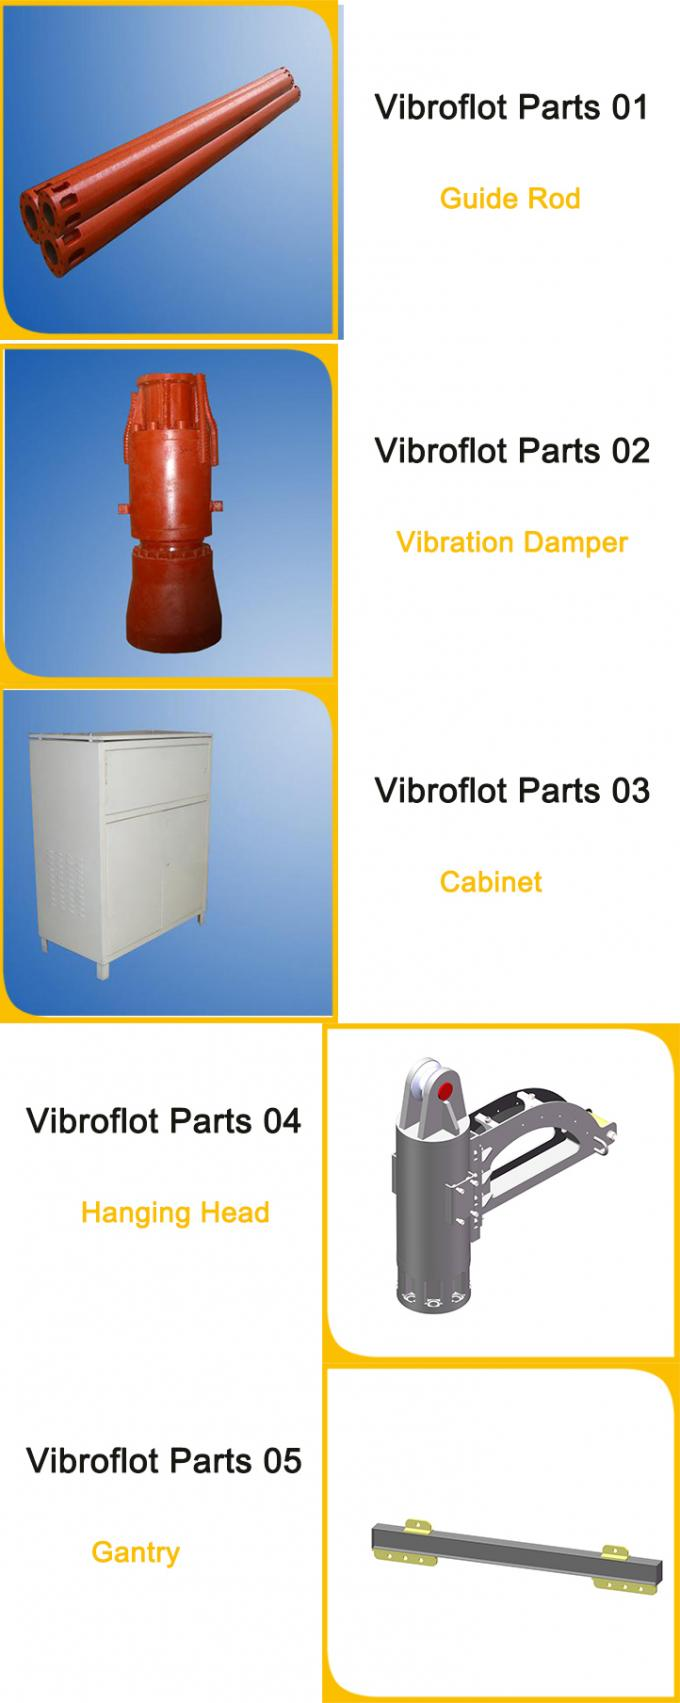 Vibroflot Equipment For Vibroflotation Compaction Of Cohesionless Soils / Ground Improvement Engineering